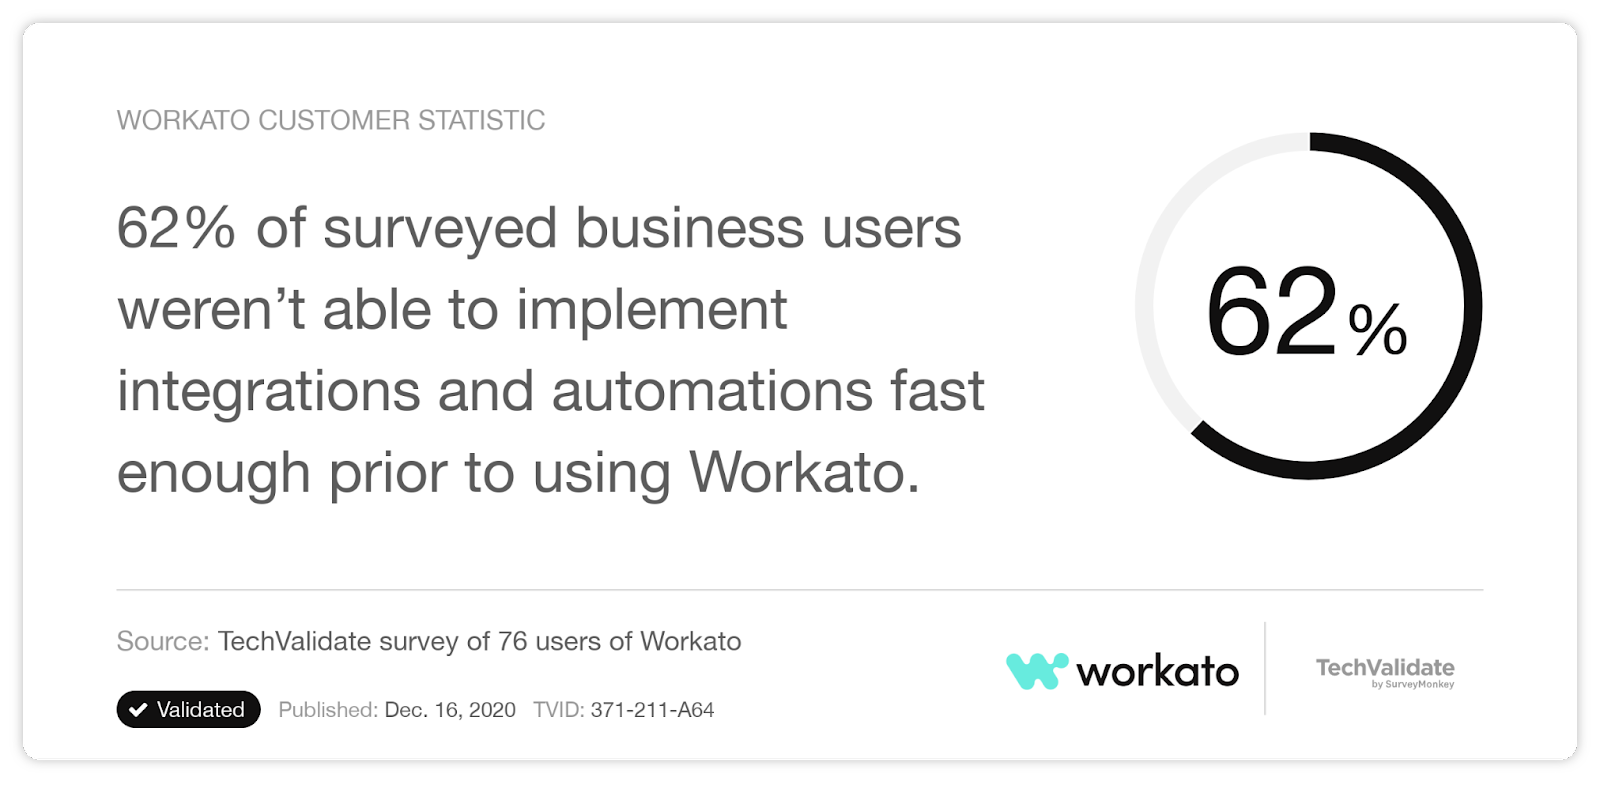 A stat that highlights the fact that business users struggled to implement integrations and automations fast enough before using Workato